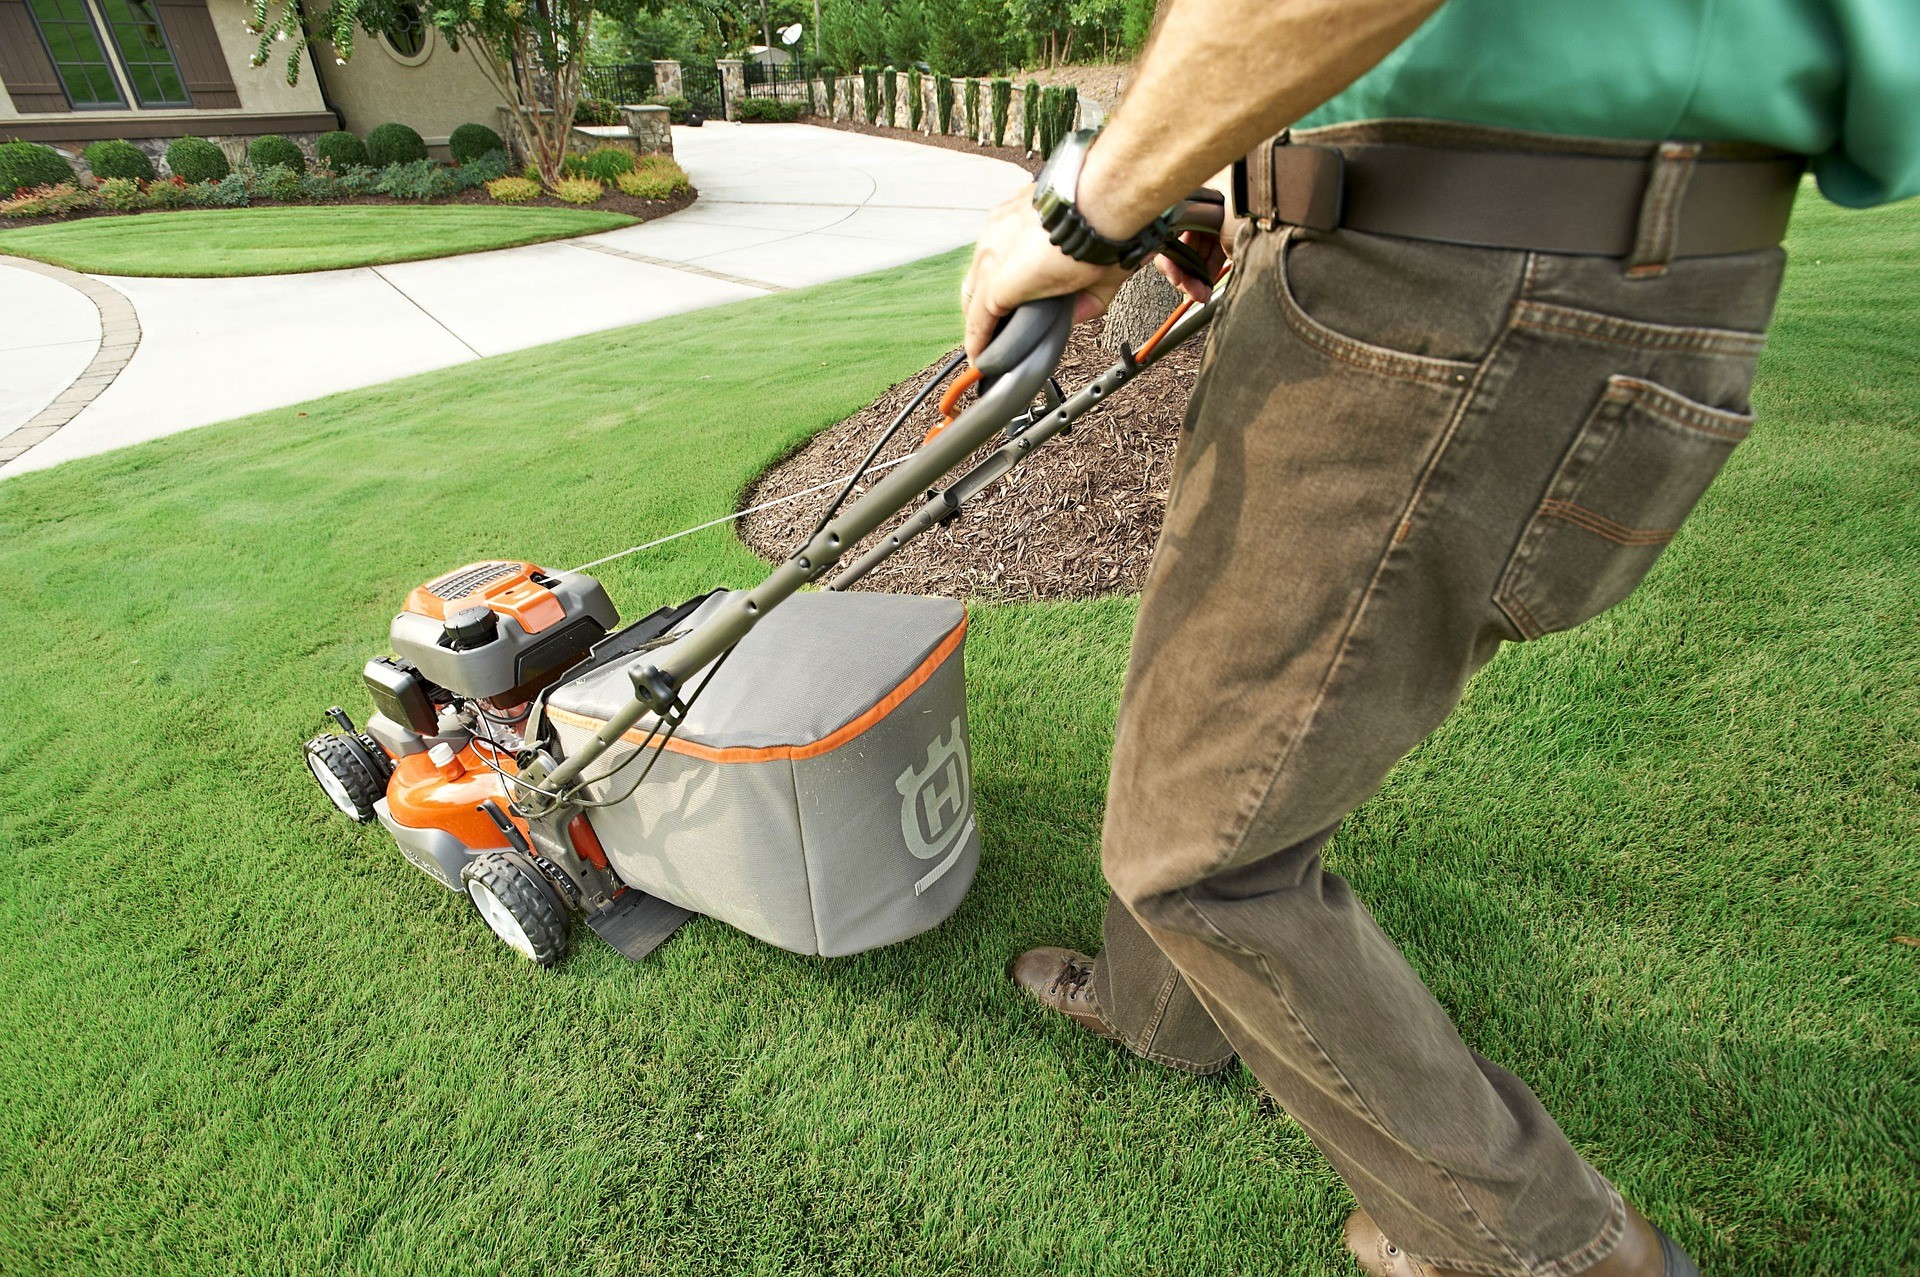 lawn-maintenance-with-a-lawn-mower